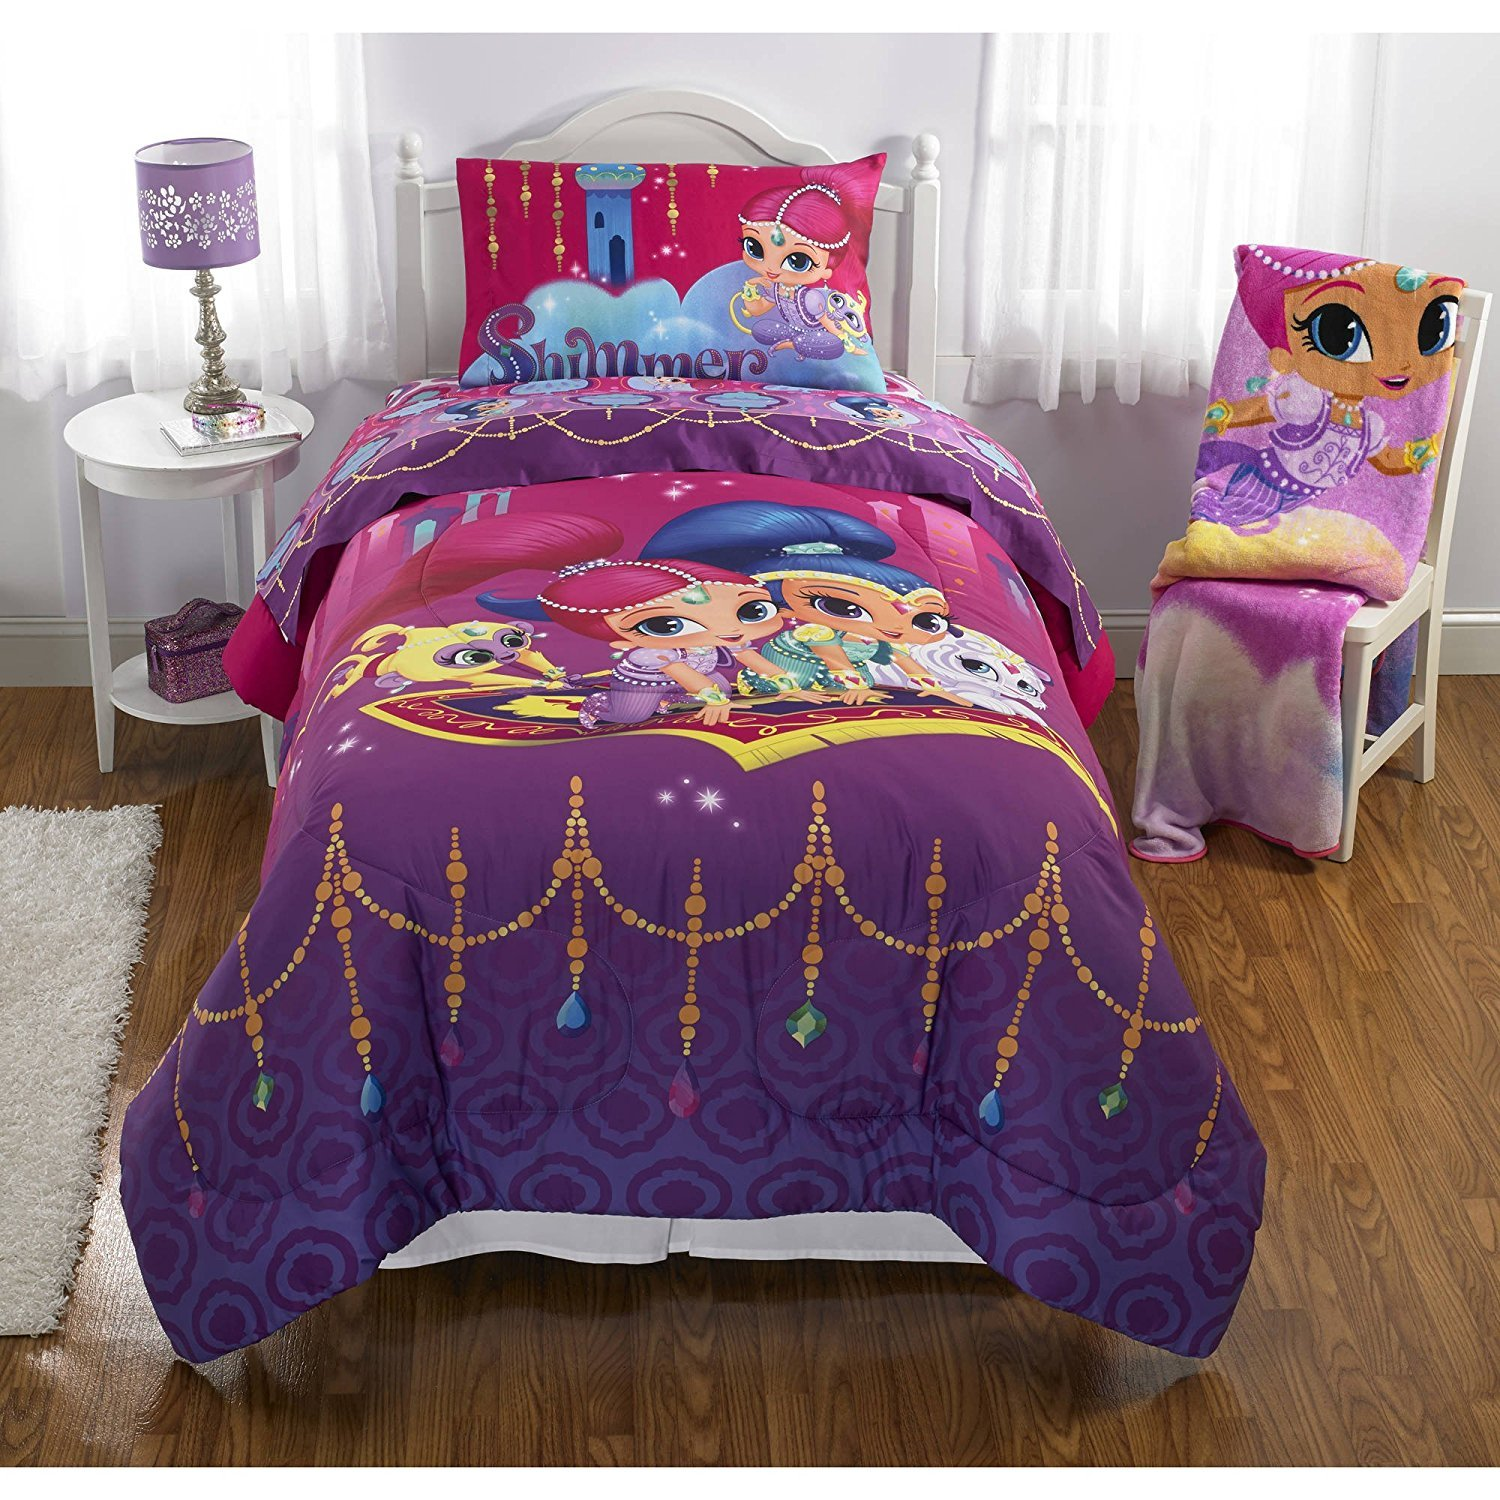 Nickelodeon Amp Paw Patrol Kids Bedding Sets Sale Ease